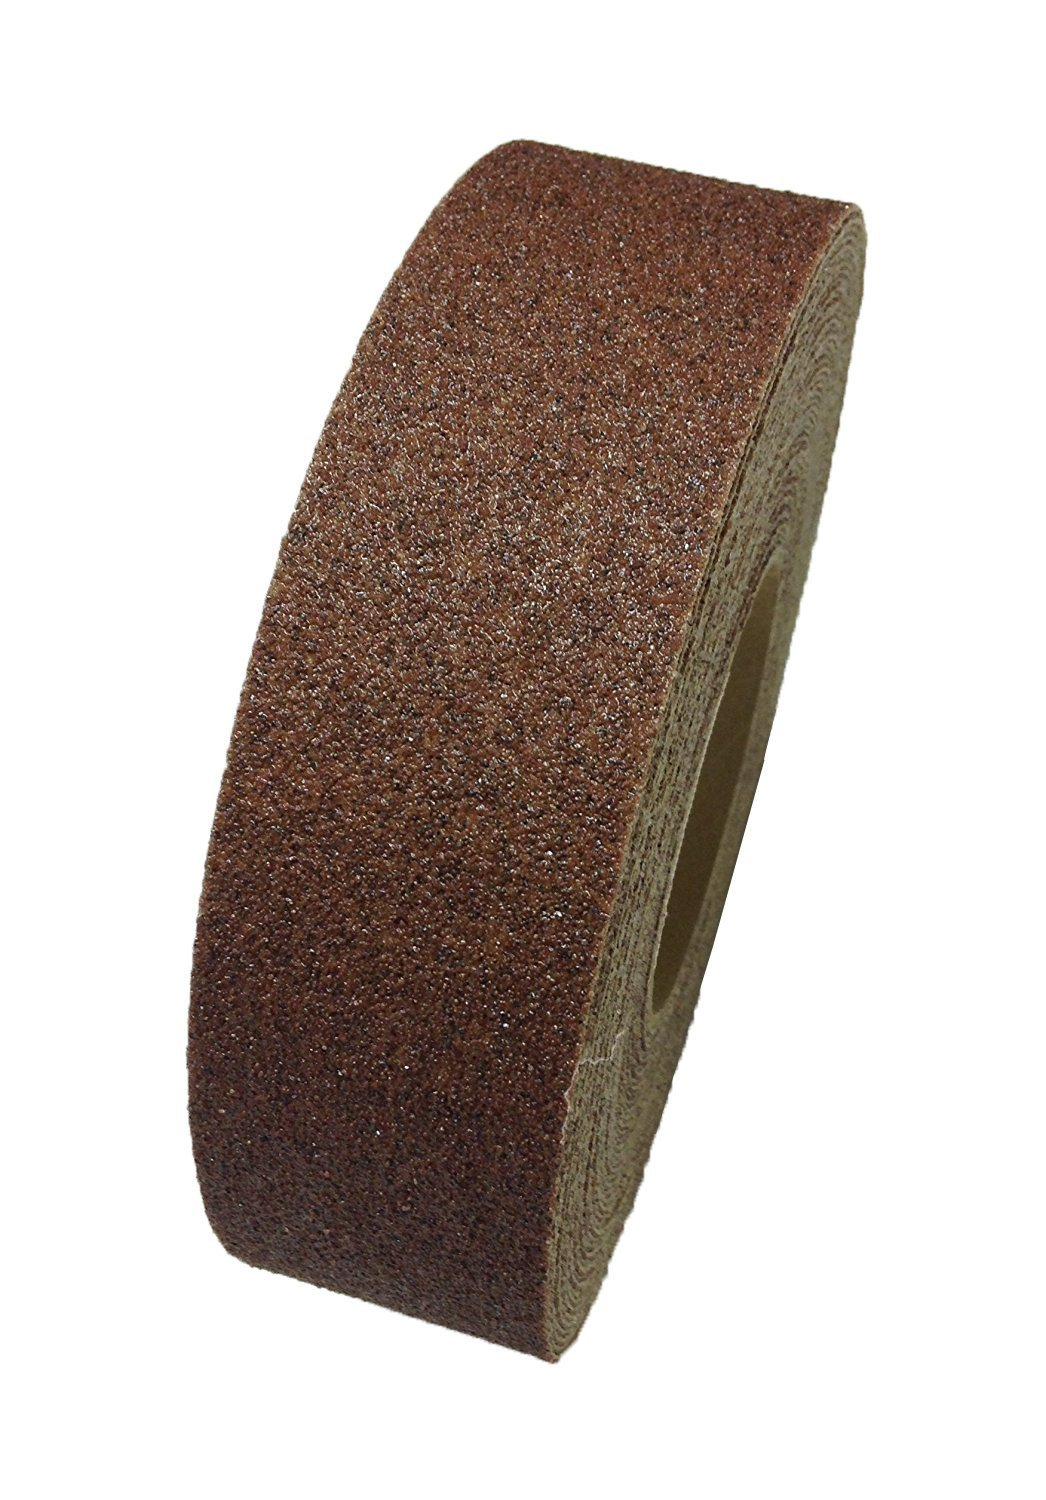 Safe Way Traction 2'' X 12' Roll Brown Abrasive Grit Anti Slip Non Skid Adhesive Safety Tape Made in the USA by Sure-Foot Industries 88206-12 by Safe Way Traction